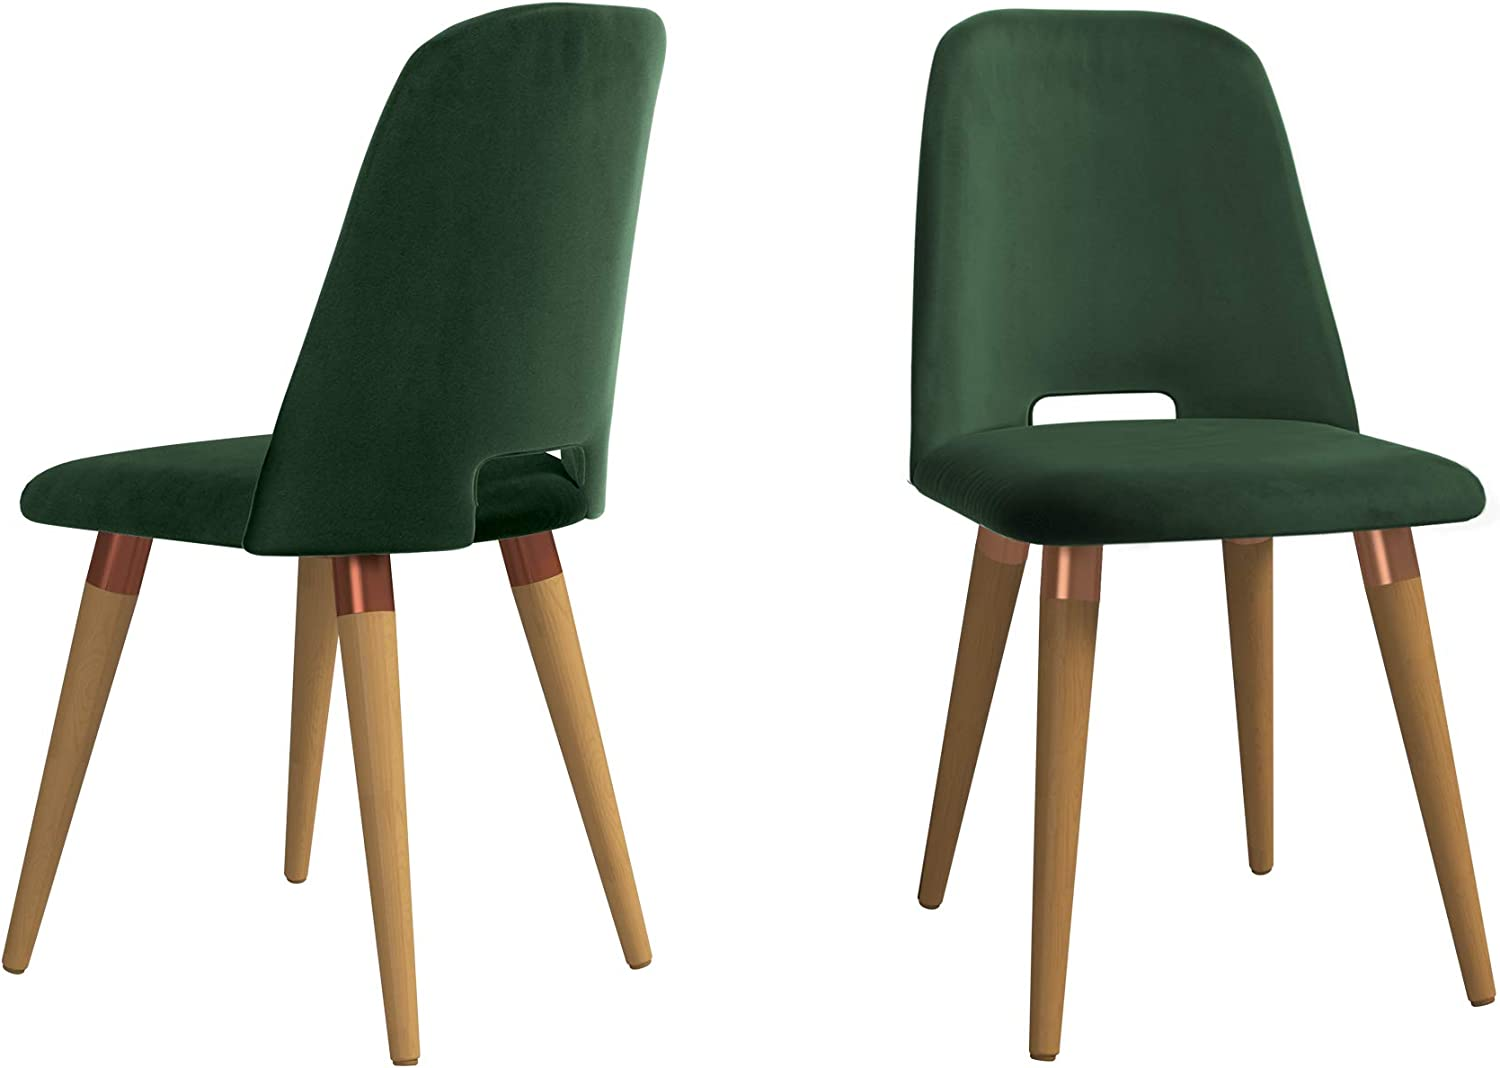 Manhattan Comfort Selina Mid Century Modern Upholstered Living Room Armchair, Set of 2, Green